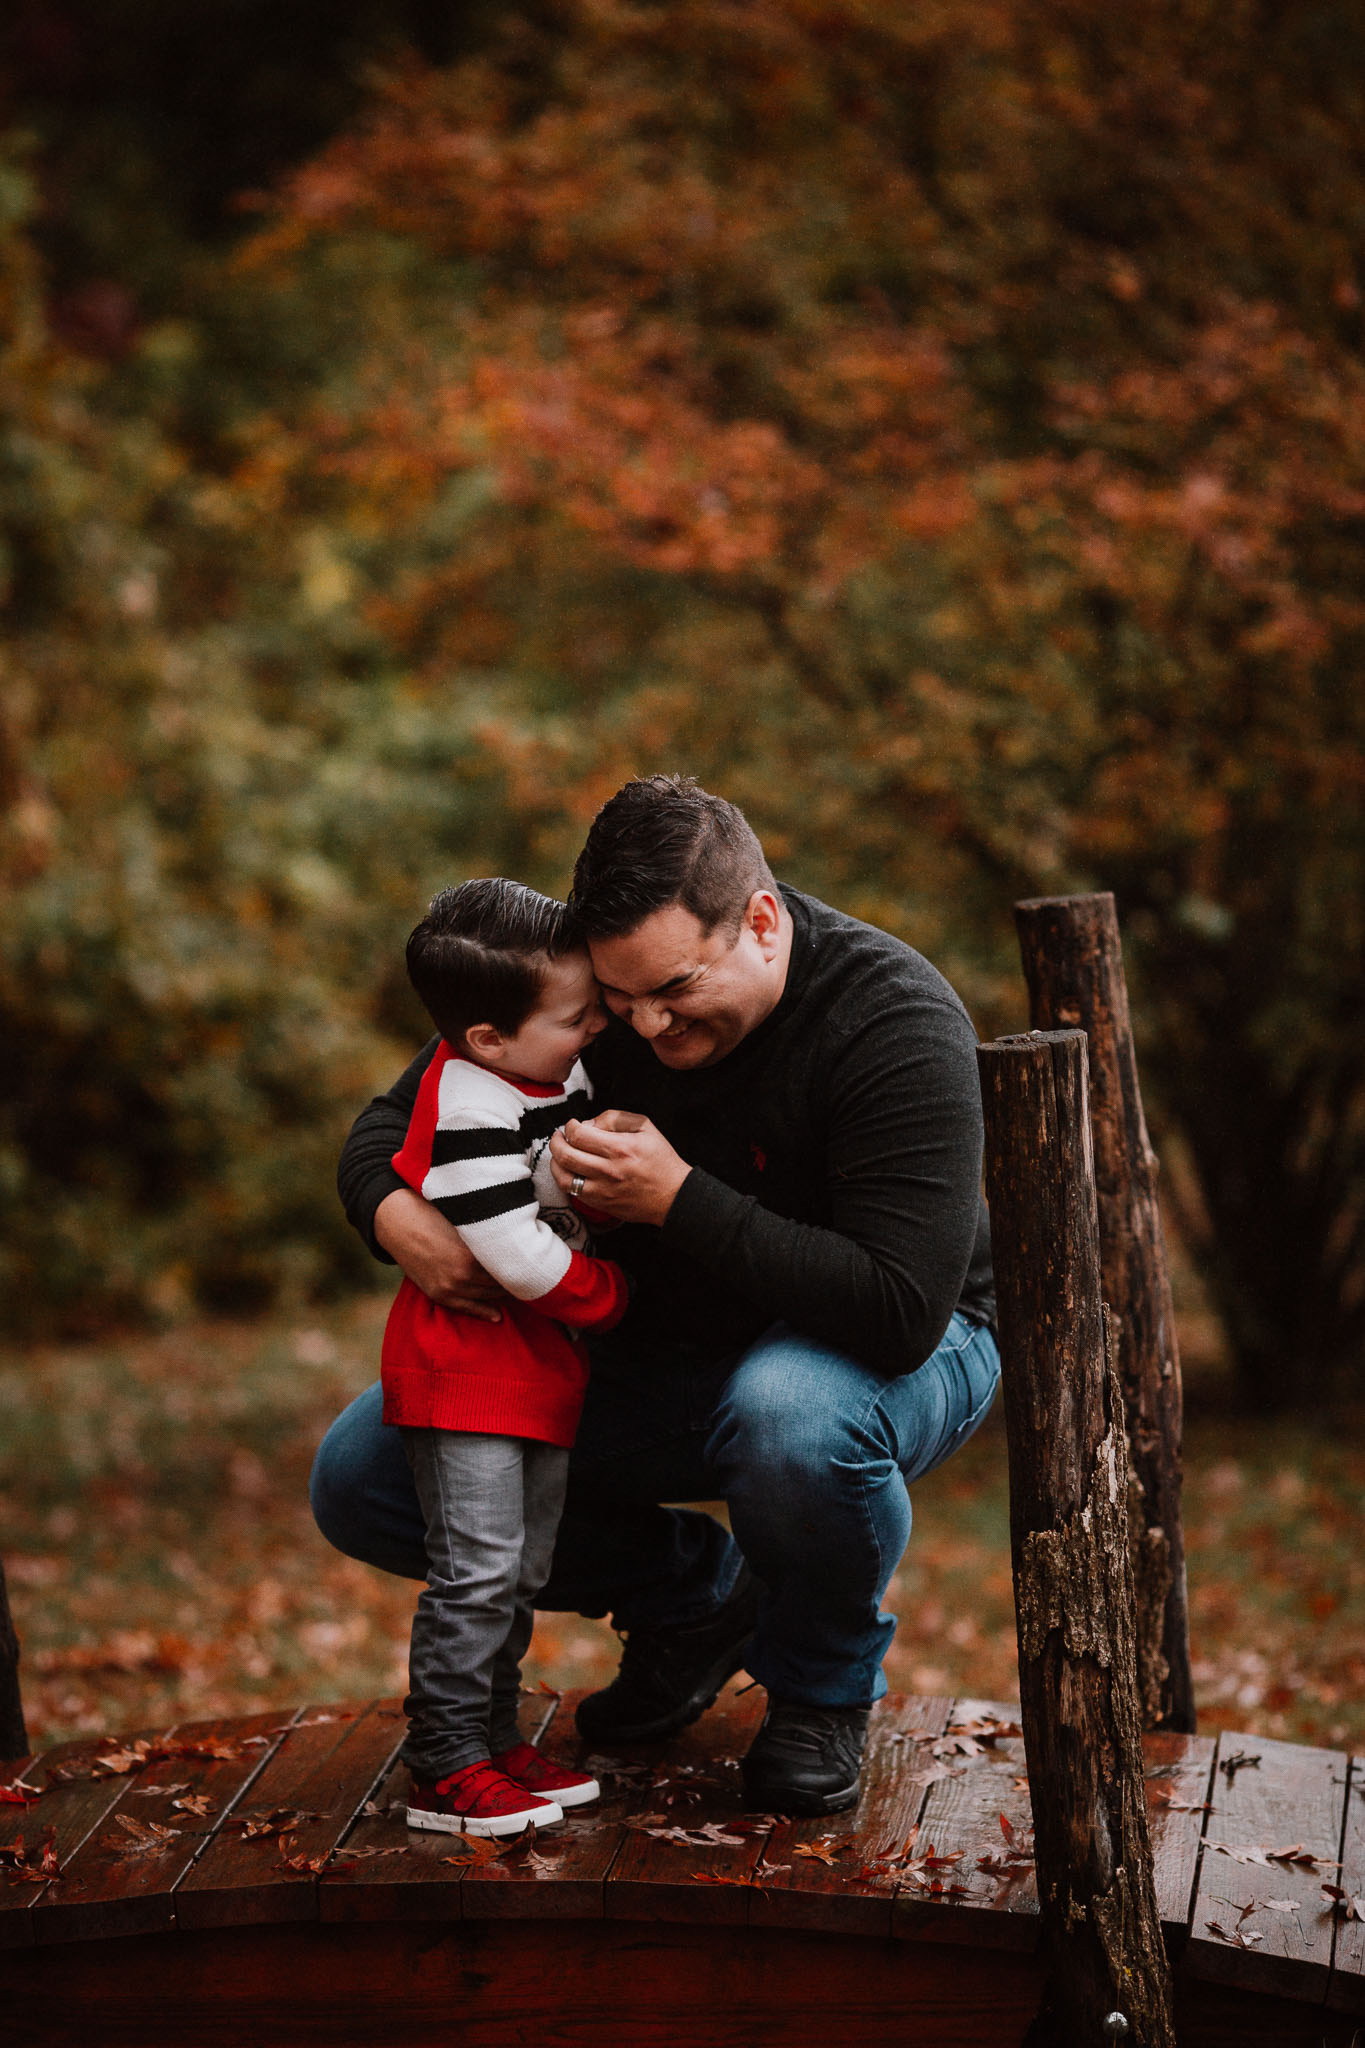 father son hug laugh fall autumn childhood family lifestyle documentary Rust Nature Sanctuary Leesburg Virginia Marti Austin Photography